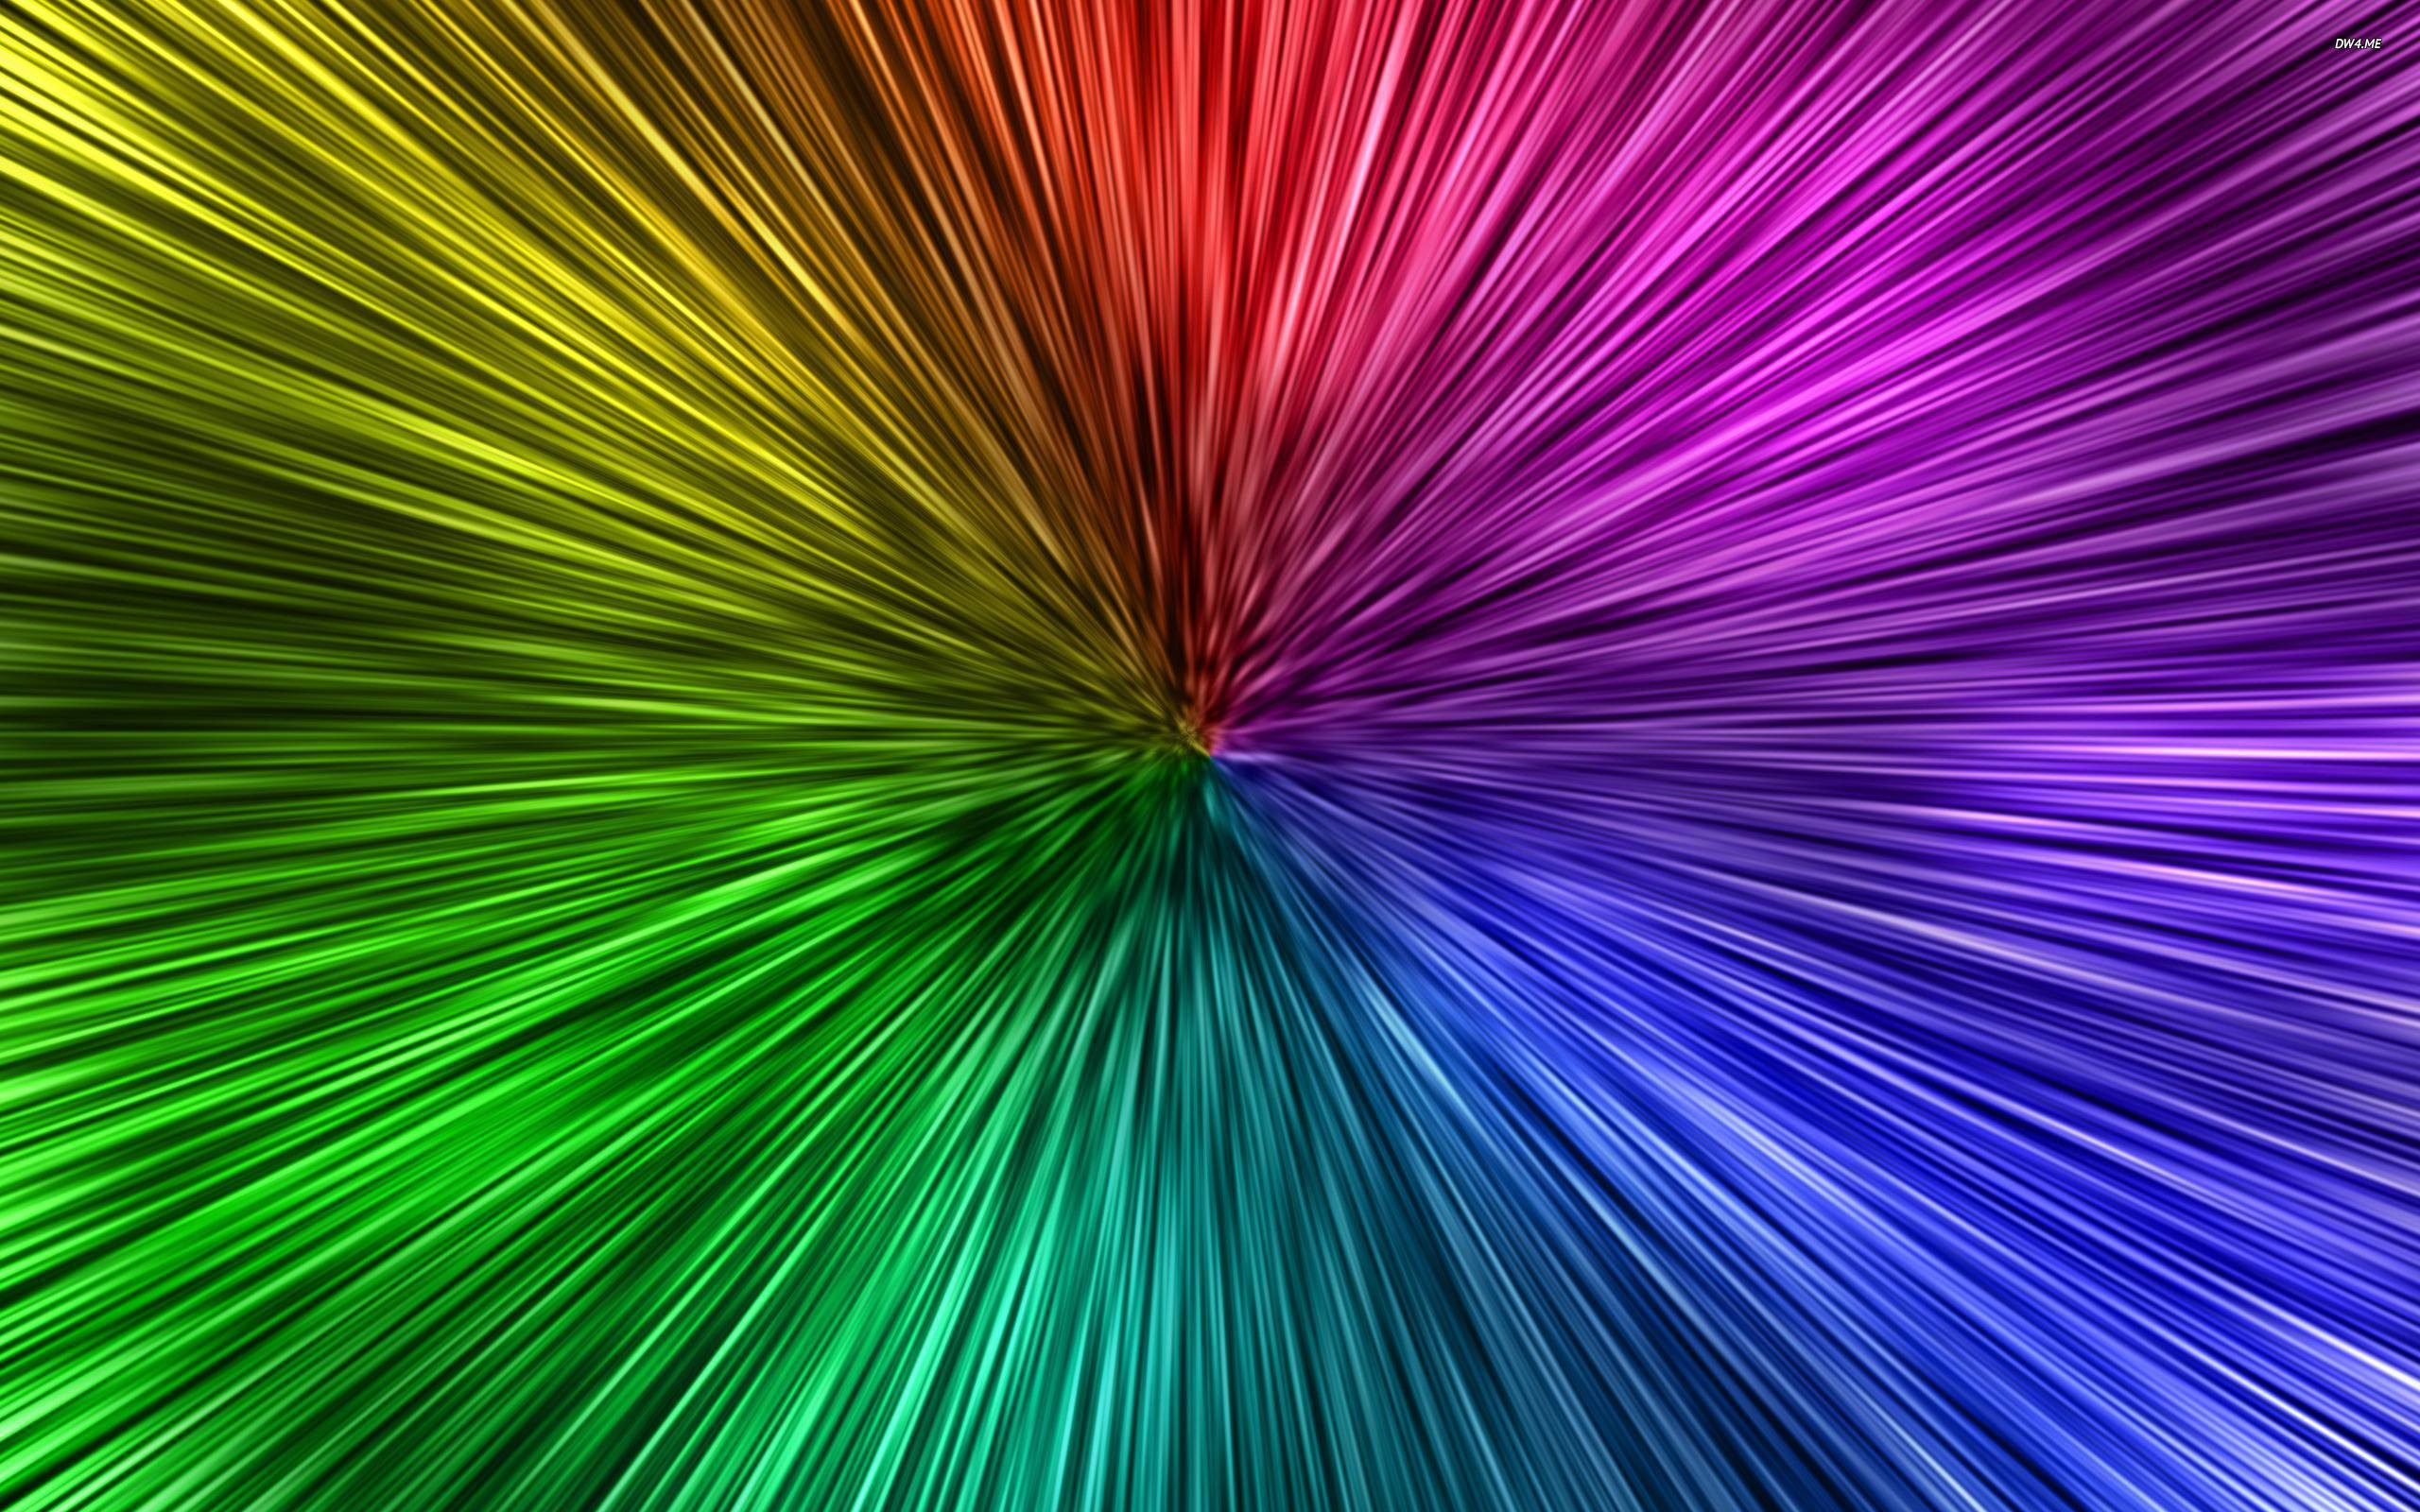 Wallpapers For > Solid Neon Colors Wallpaper